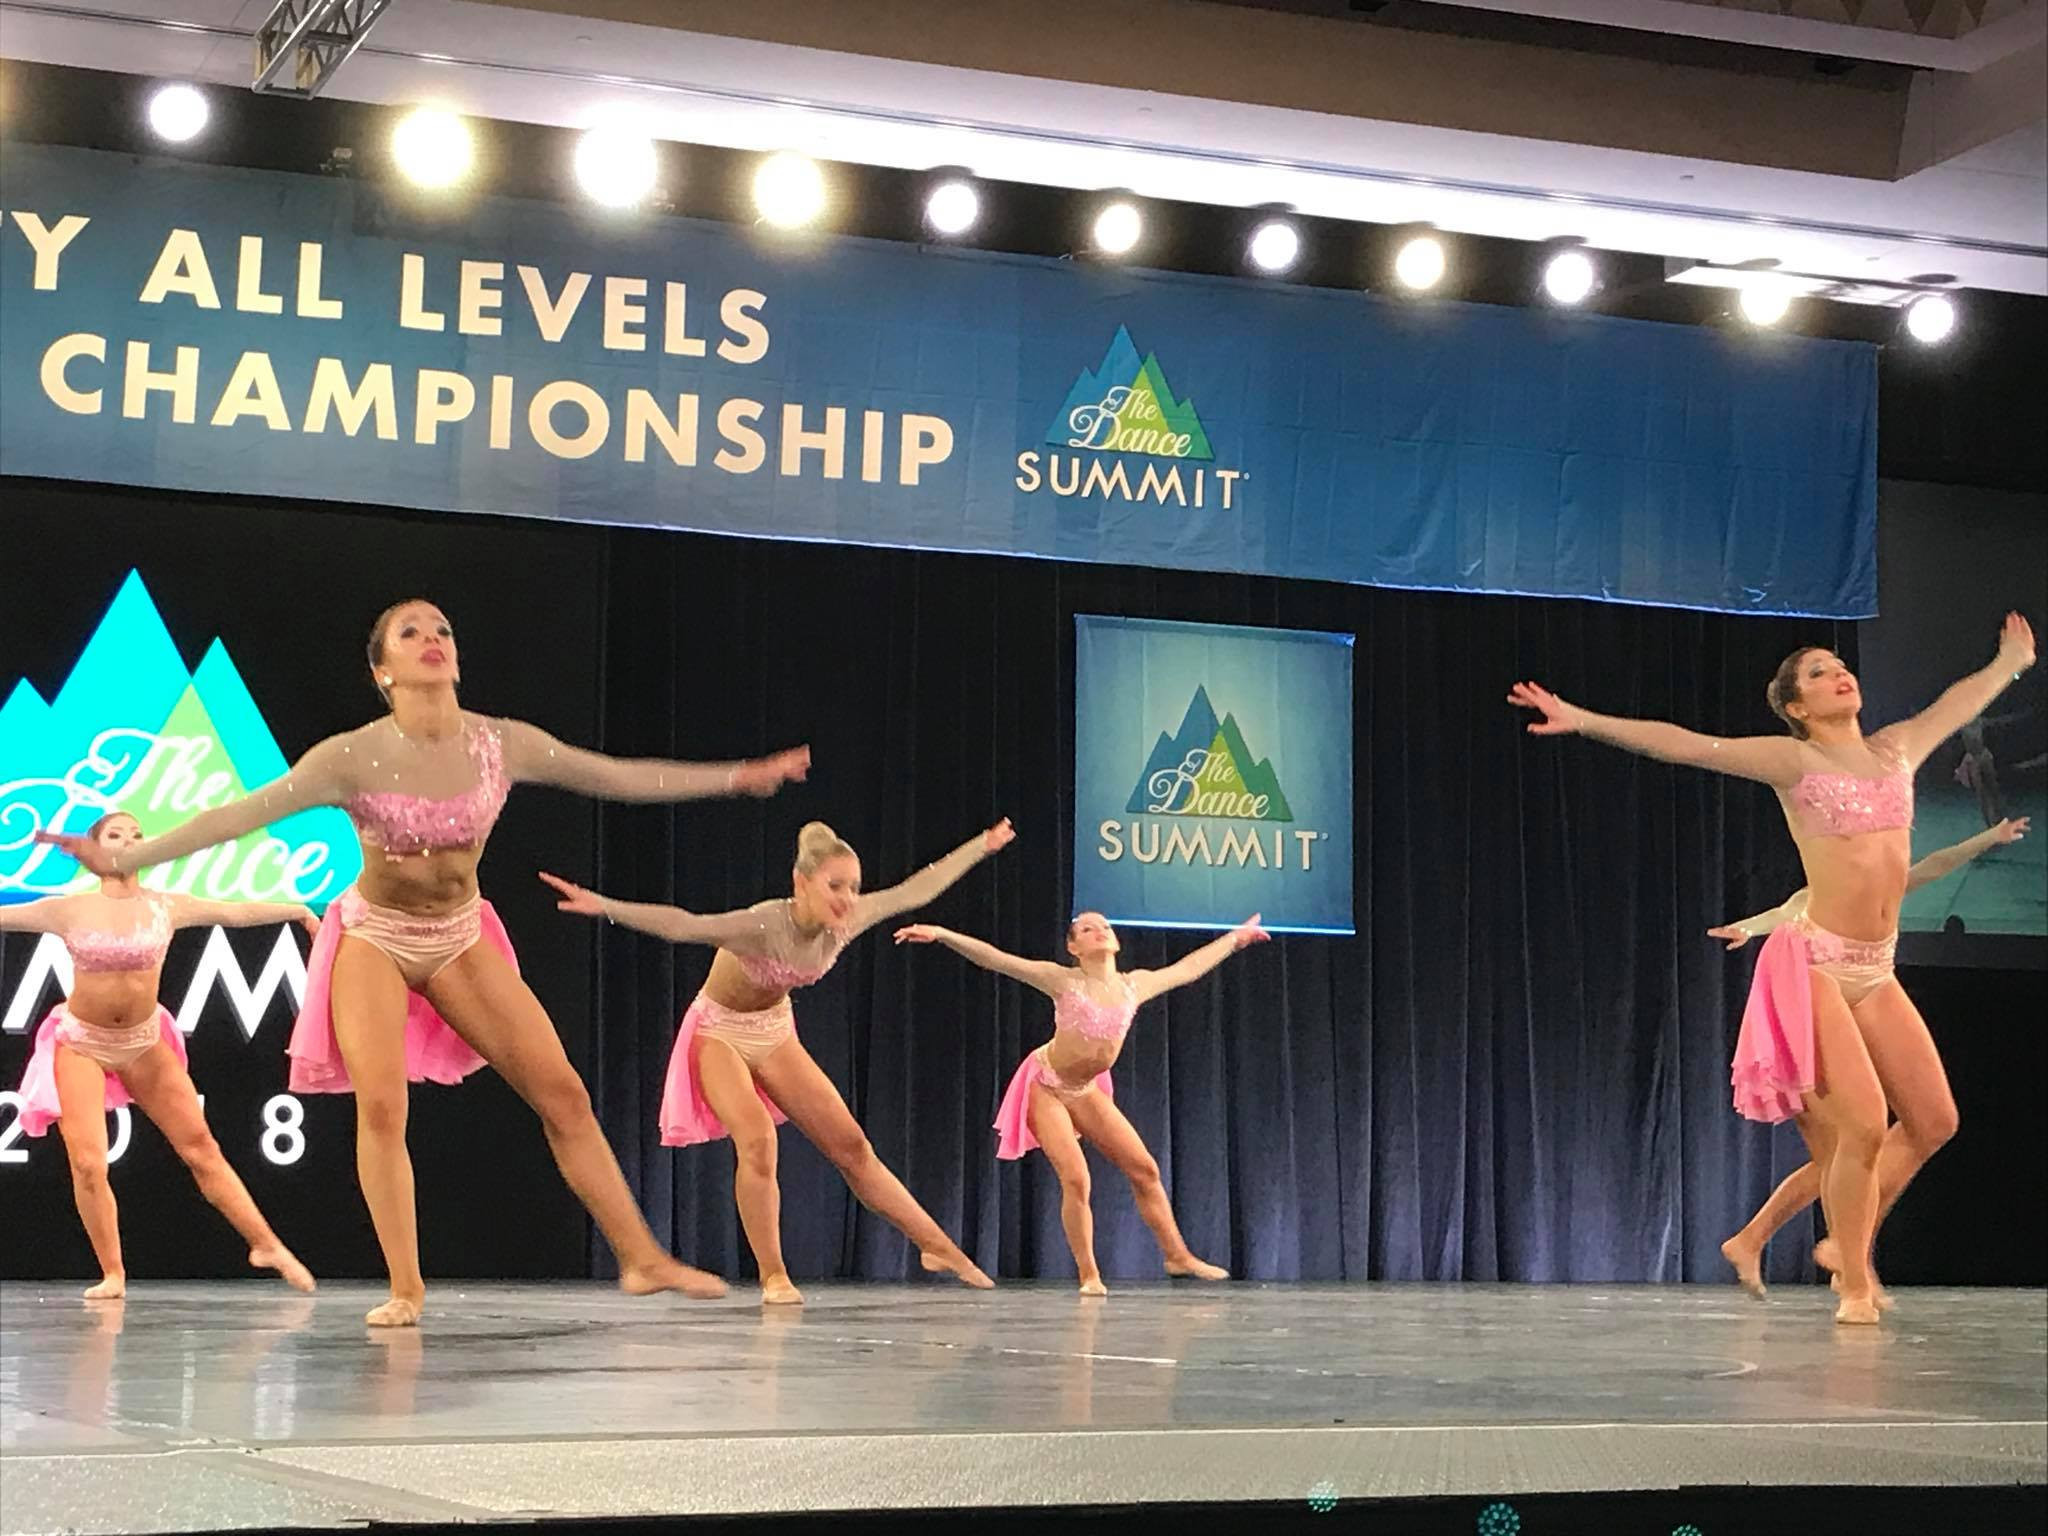 Dance and cheer are sports growing in popularity ©AASCF